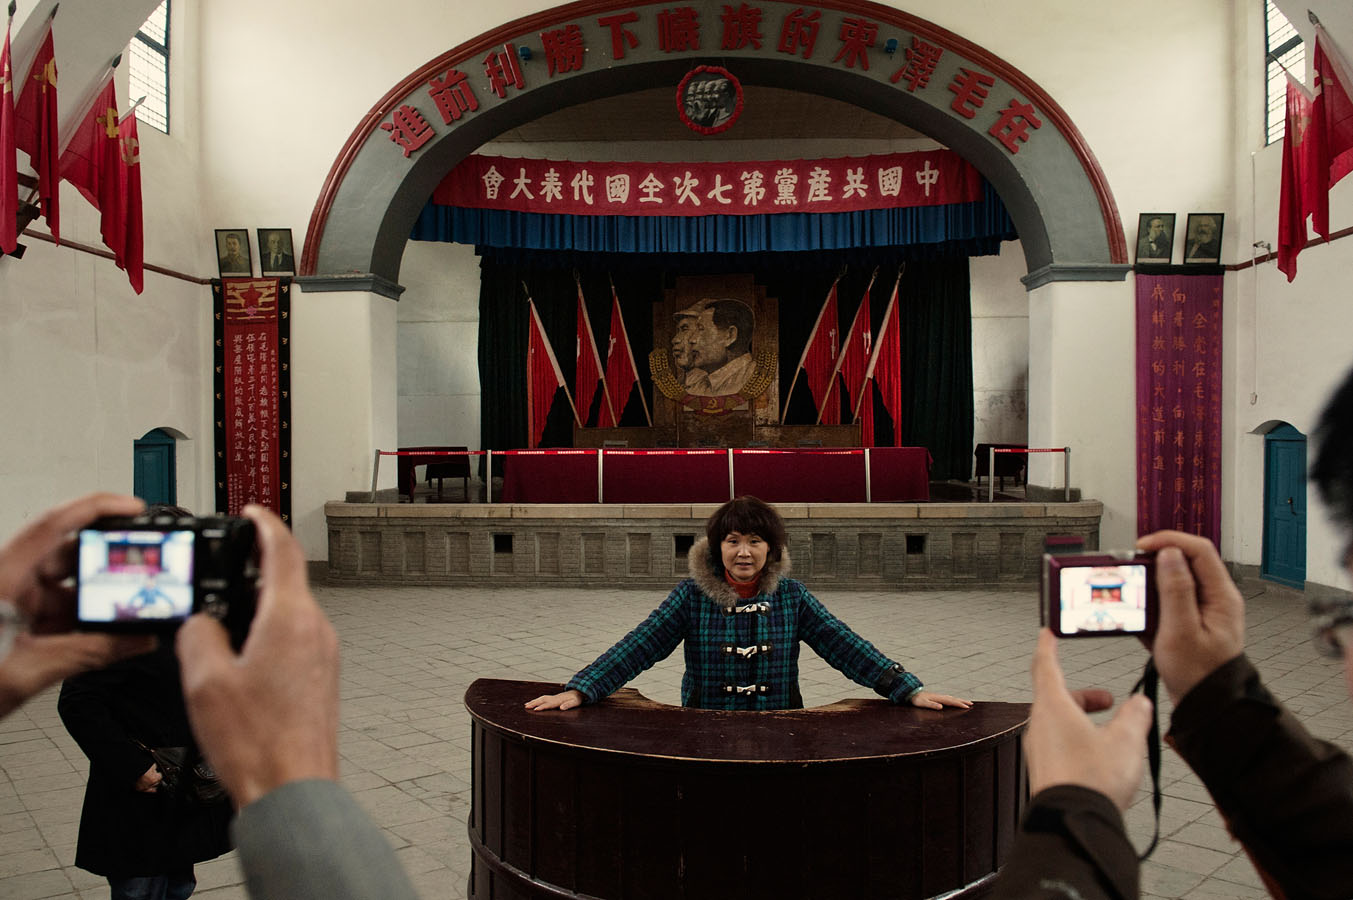 Tourists visiting Yangjialing Assembly Hall in Yan'An, from where Mao Zedong launched one of the Chinese Communist party first purge (the rectification campaign) and asserted his power as the sole leader of the Party.